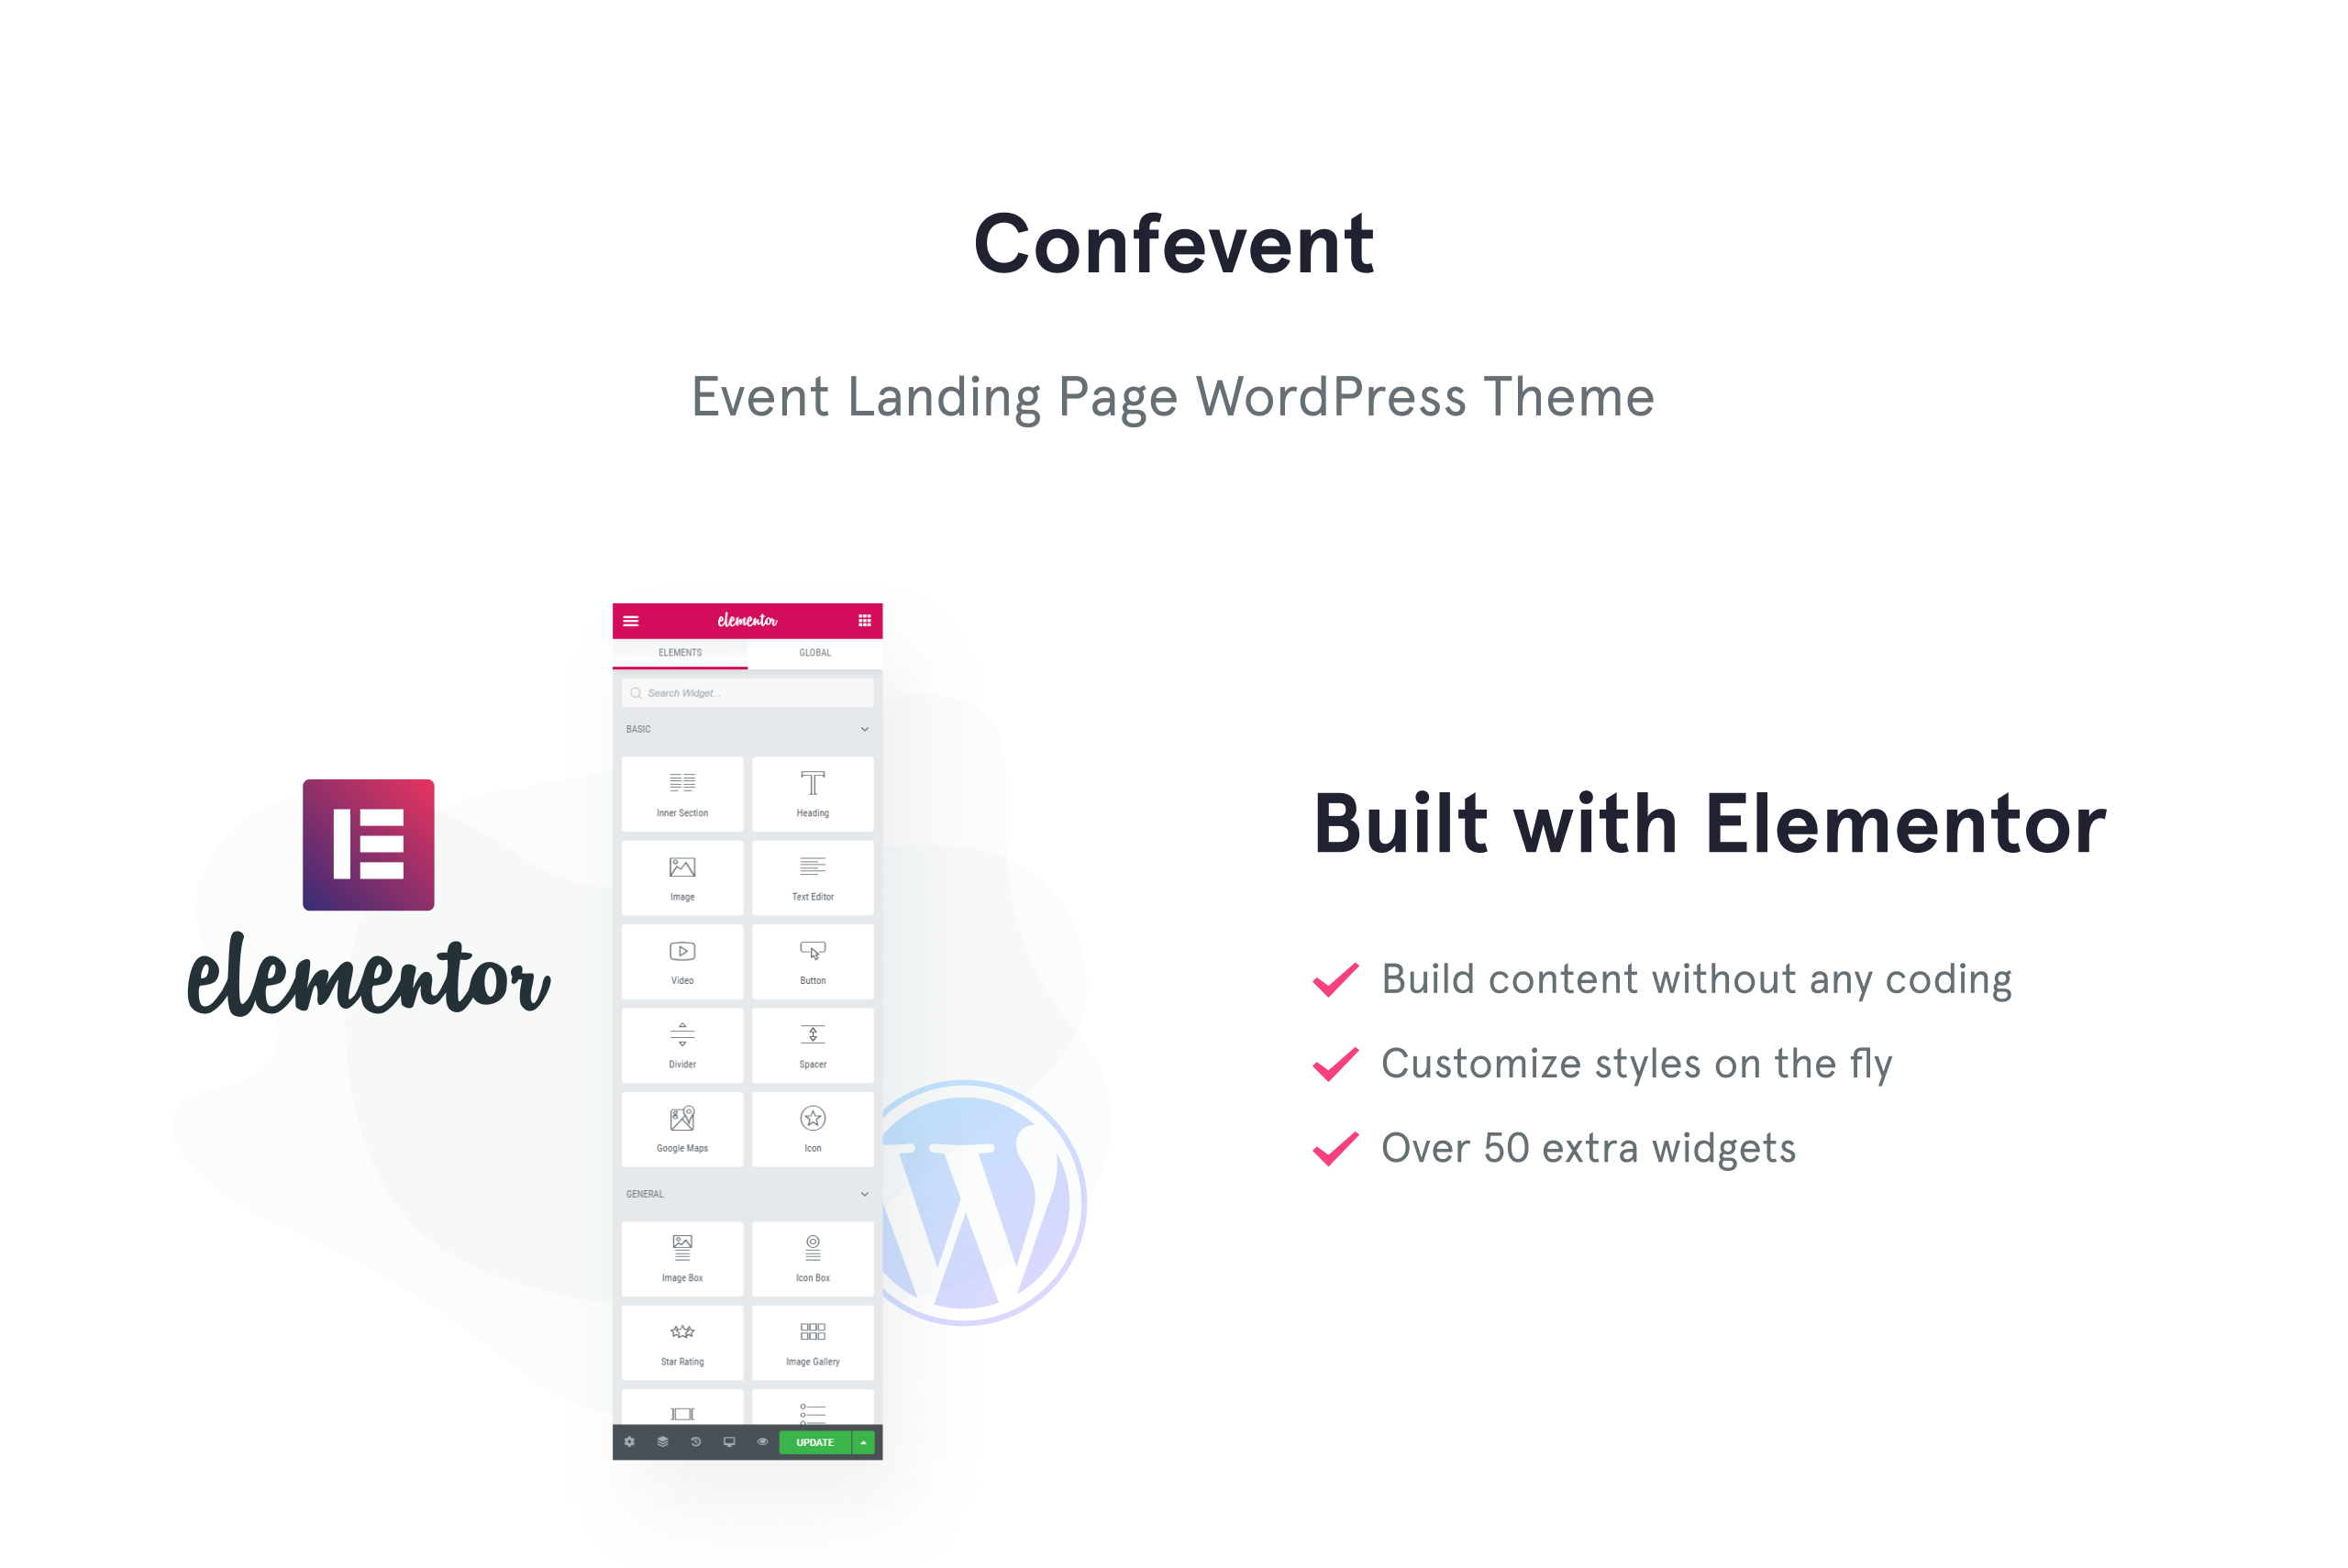 Confevent - Event Landing Page WordPress Theme